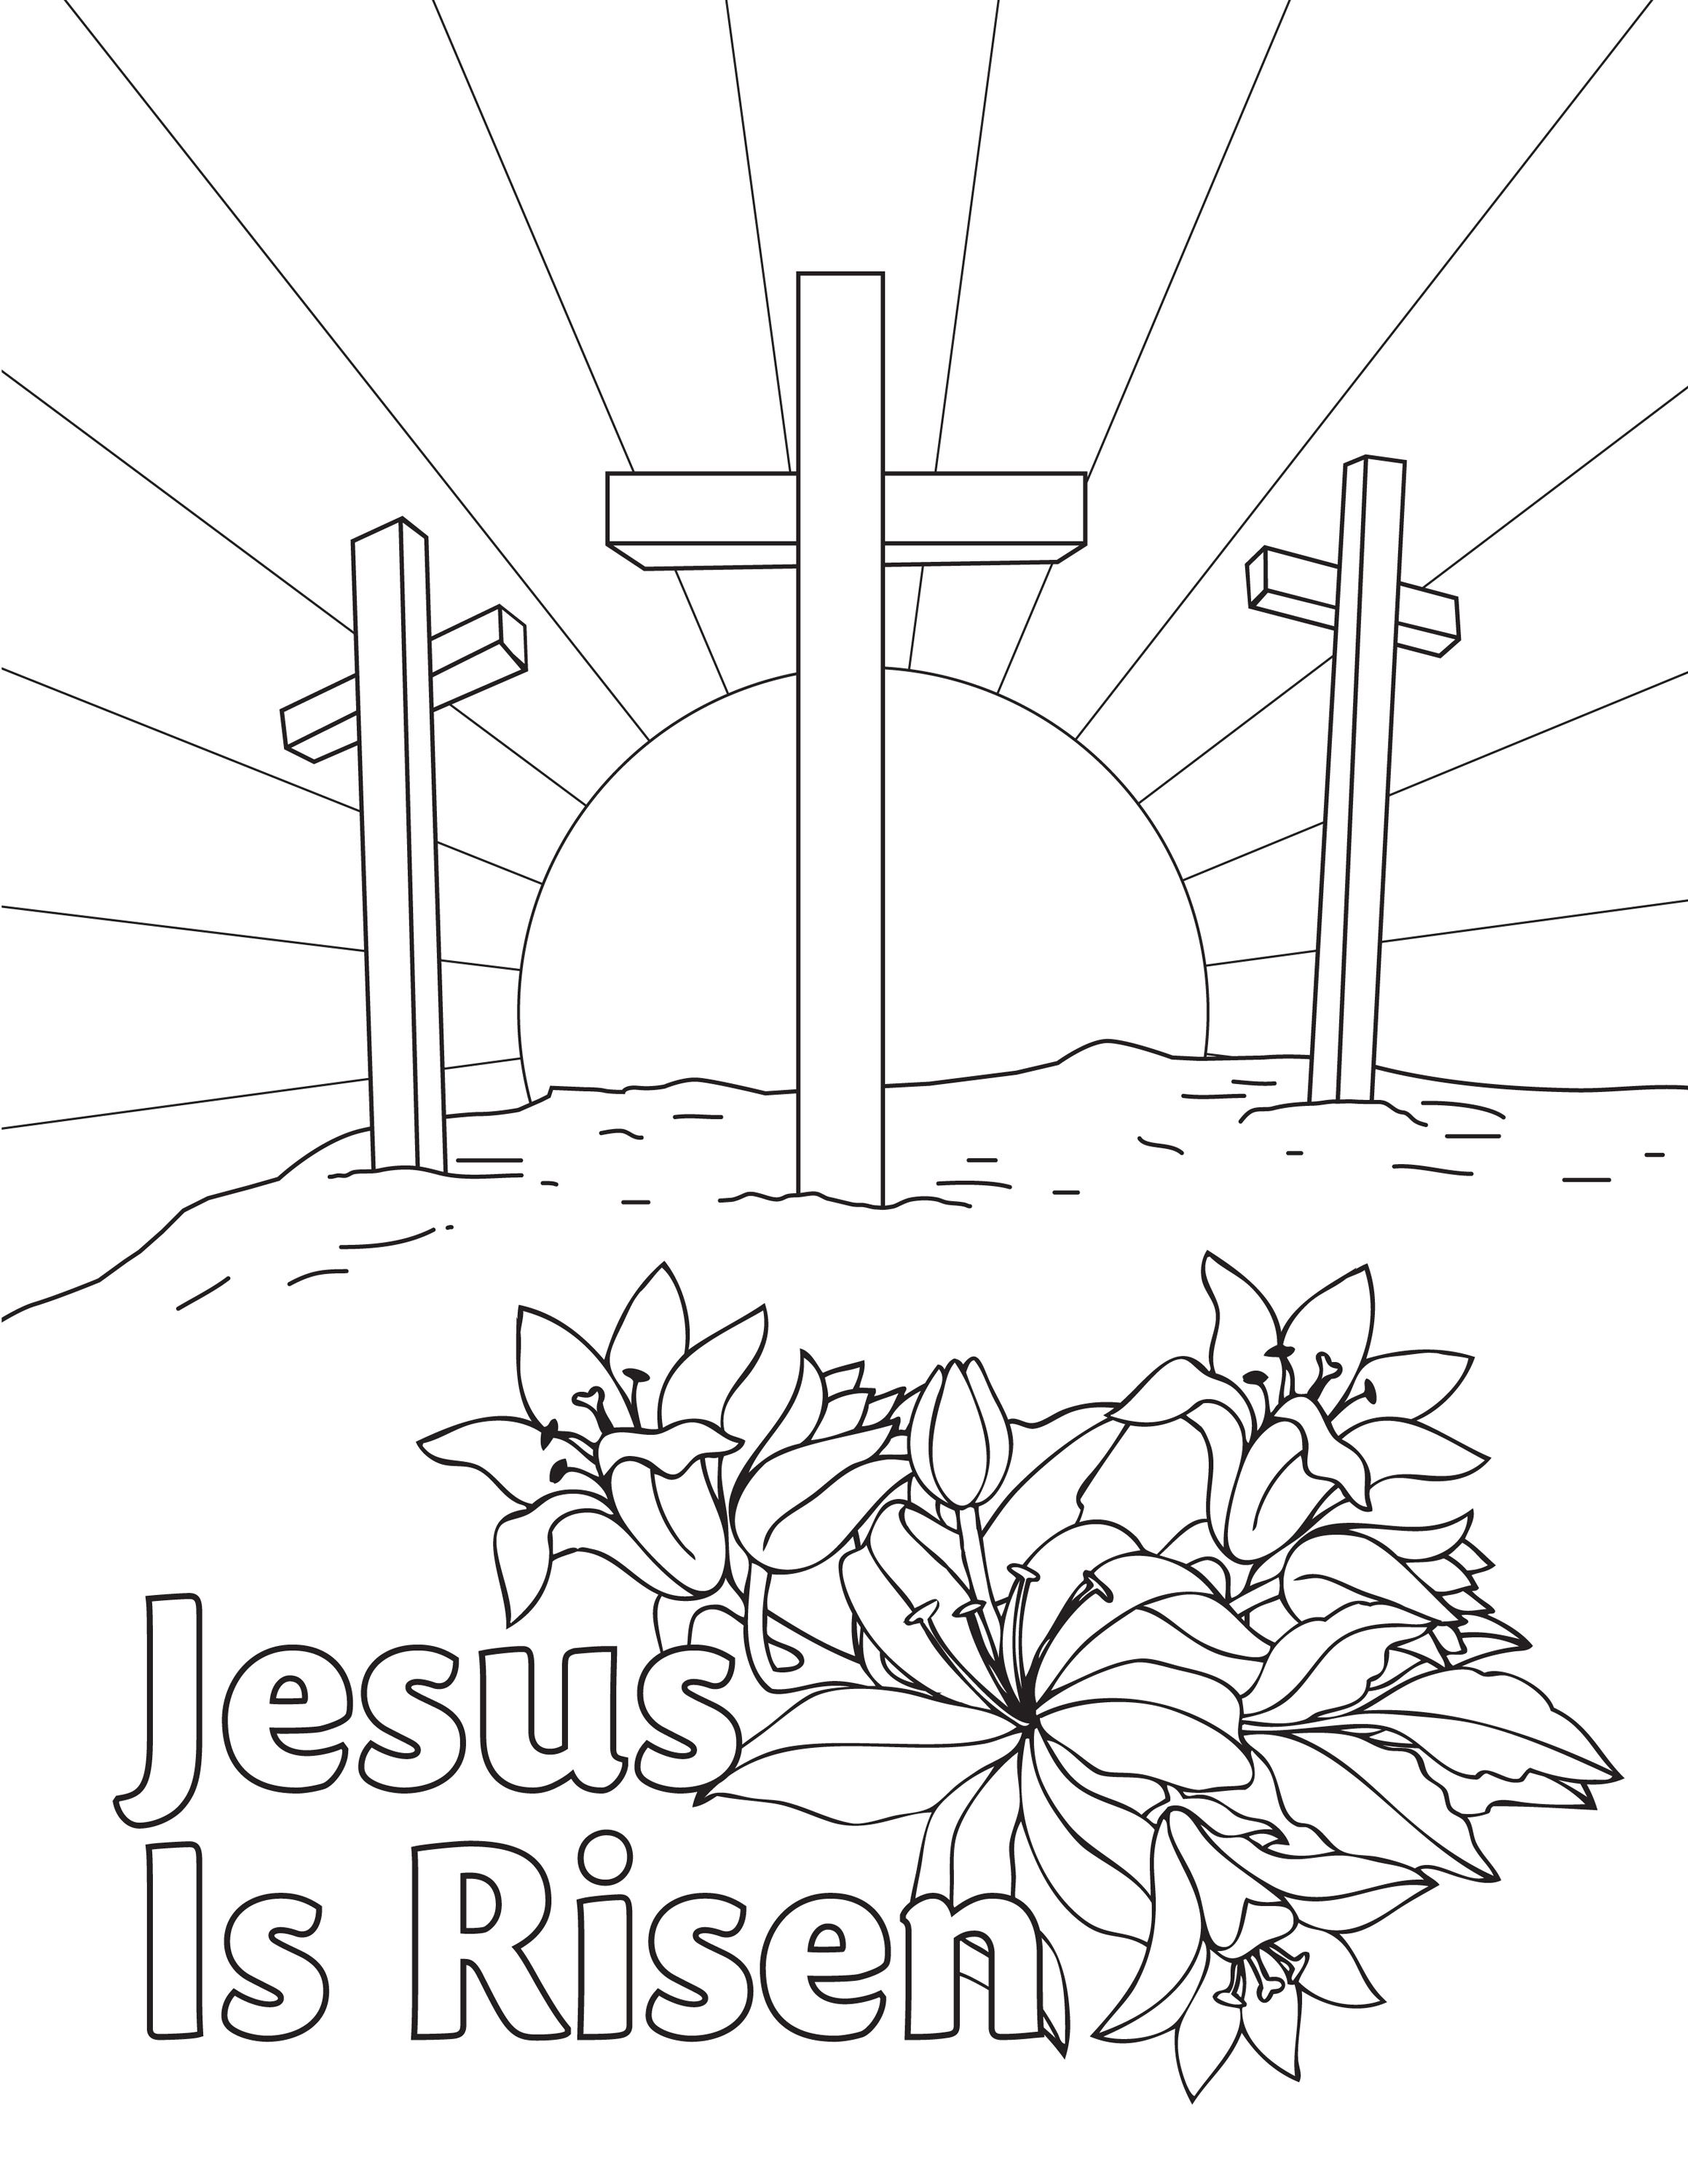 Free Easter Coloring Page Downloadable Printable From Aop Jesus Is Risen Homeschooling Jesus Coloring Pages Easter Coloring Sheets Free Easter Coloring Pages